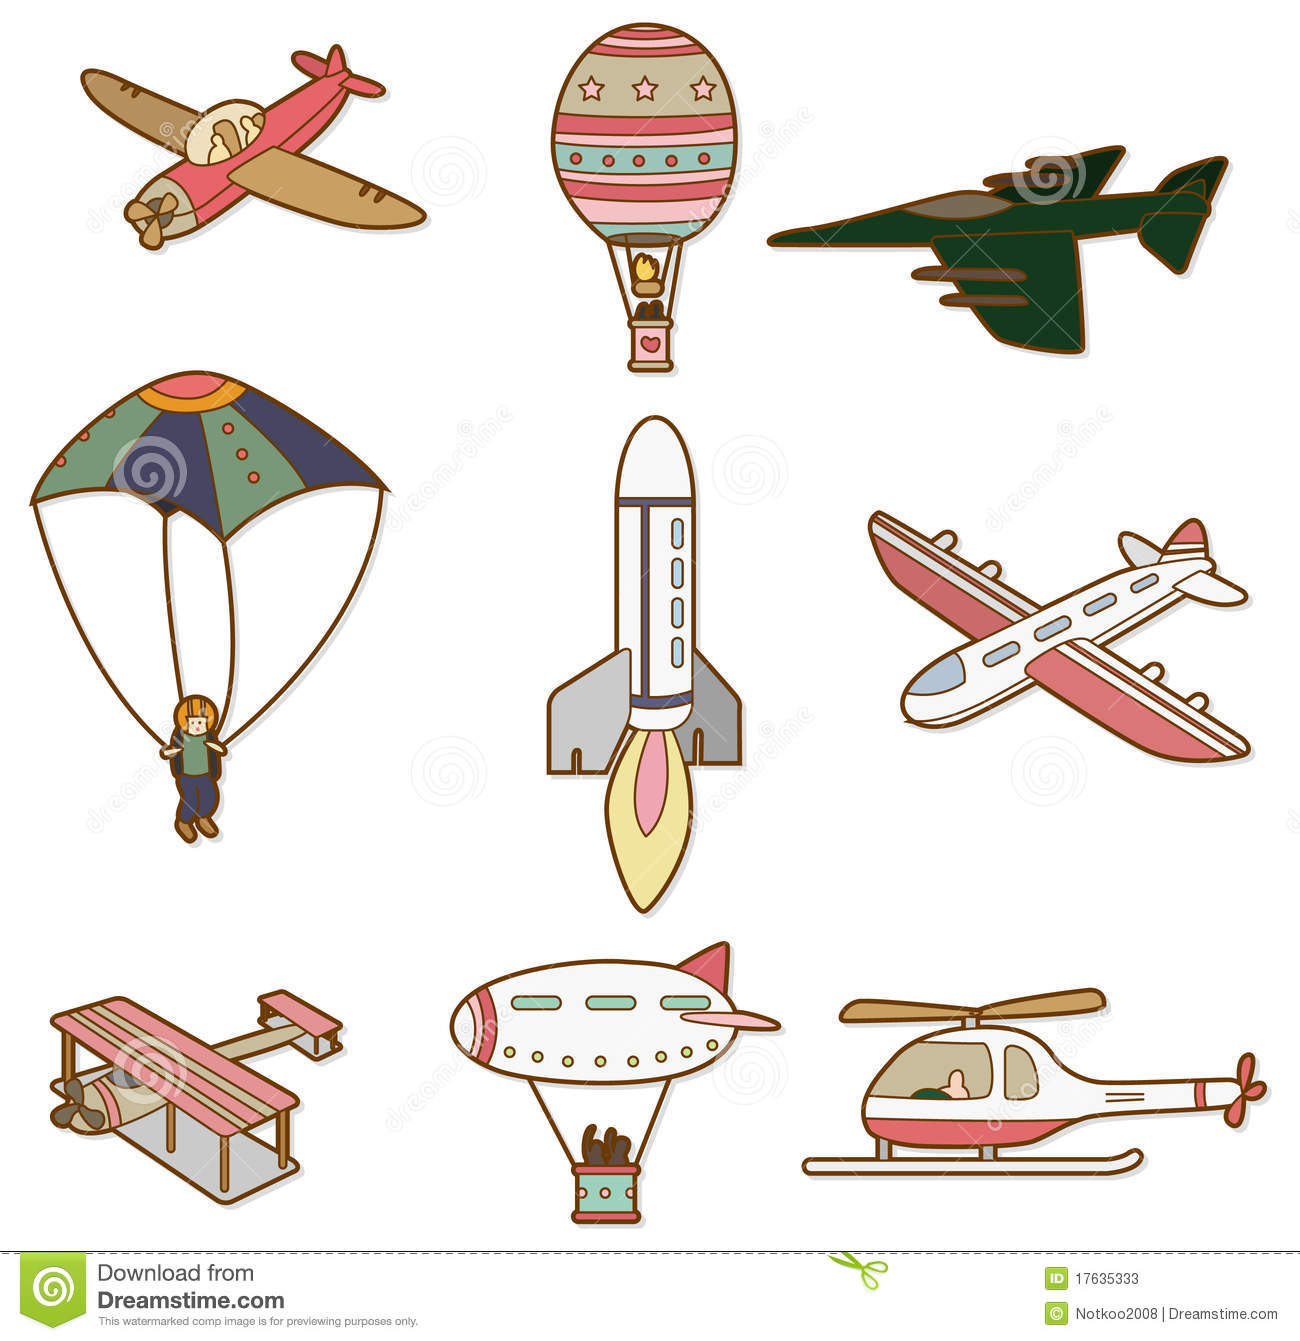 clipart of helicopter with Stock Photos Cartoon Air Transport Icon Image17635333 on Royalty Free Stock Photos Aerial View Twelve Apostles Great Ocean Road Australia Australian National Heritage Listed Kilometres Stretch Image33634958 as well Bowling Ball Clip Art likewise Suv Icon in addition Stock Photo Cartoon Stage With Truck For moreover Citroen Logo.